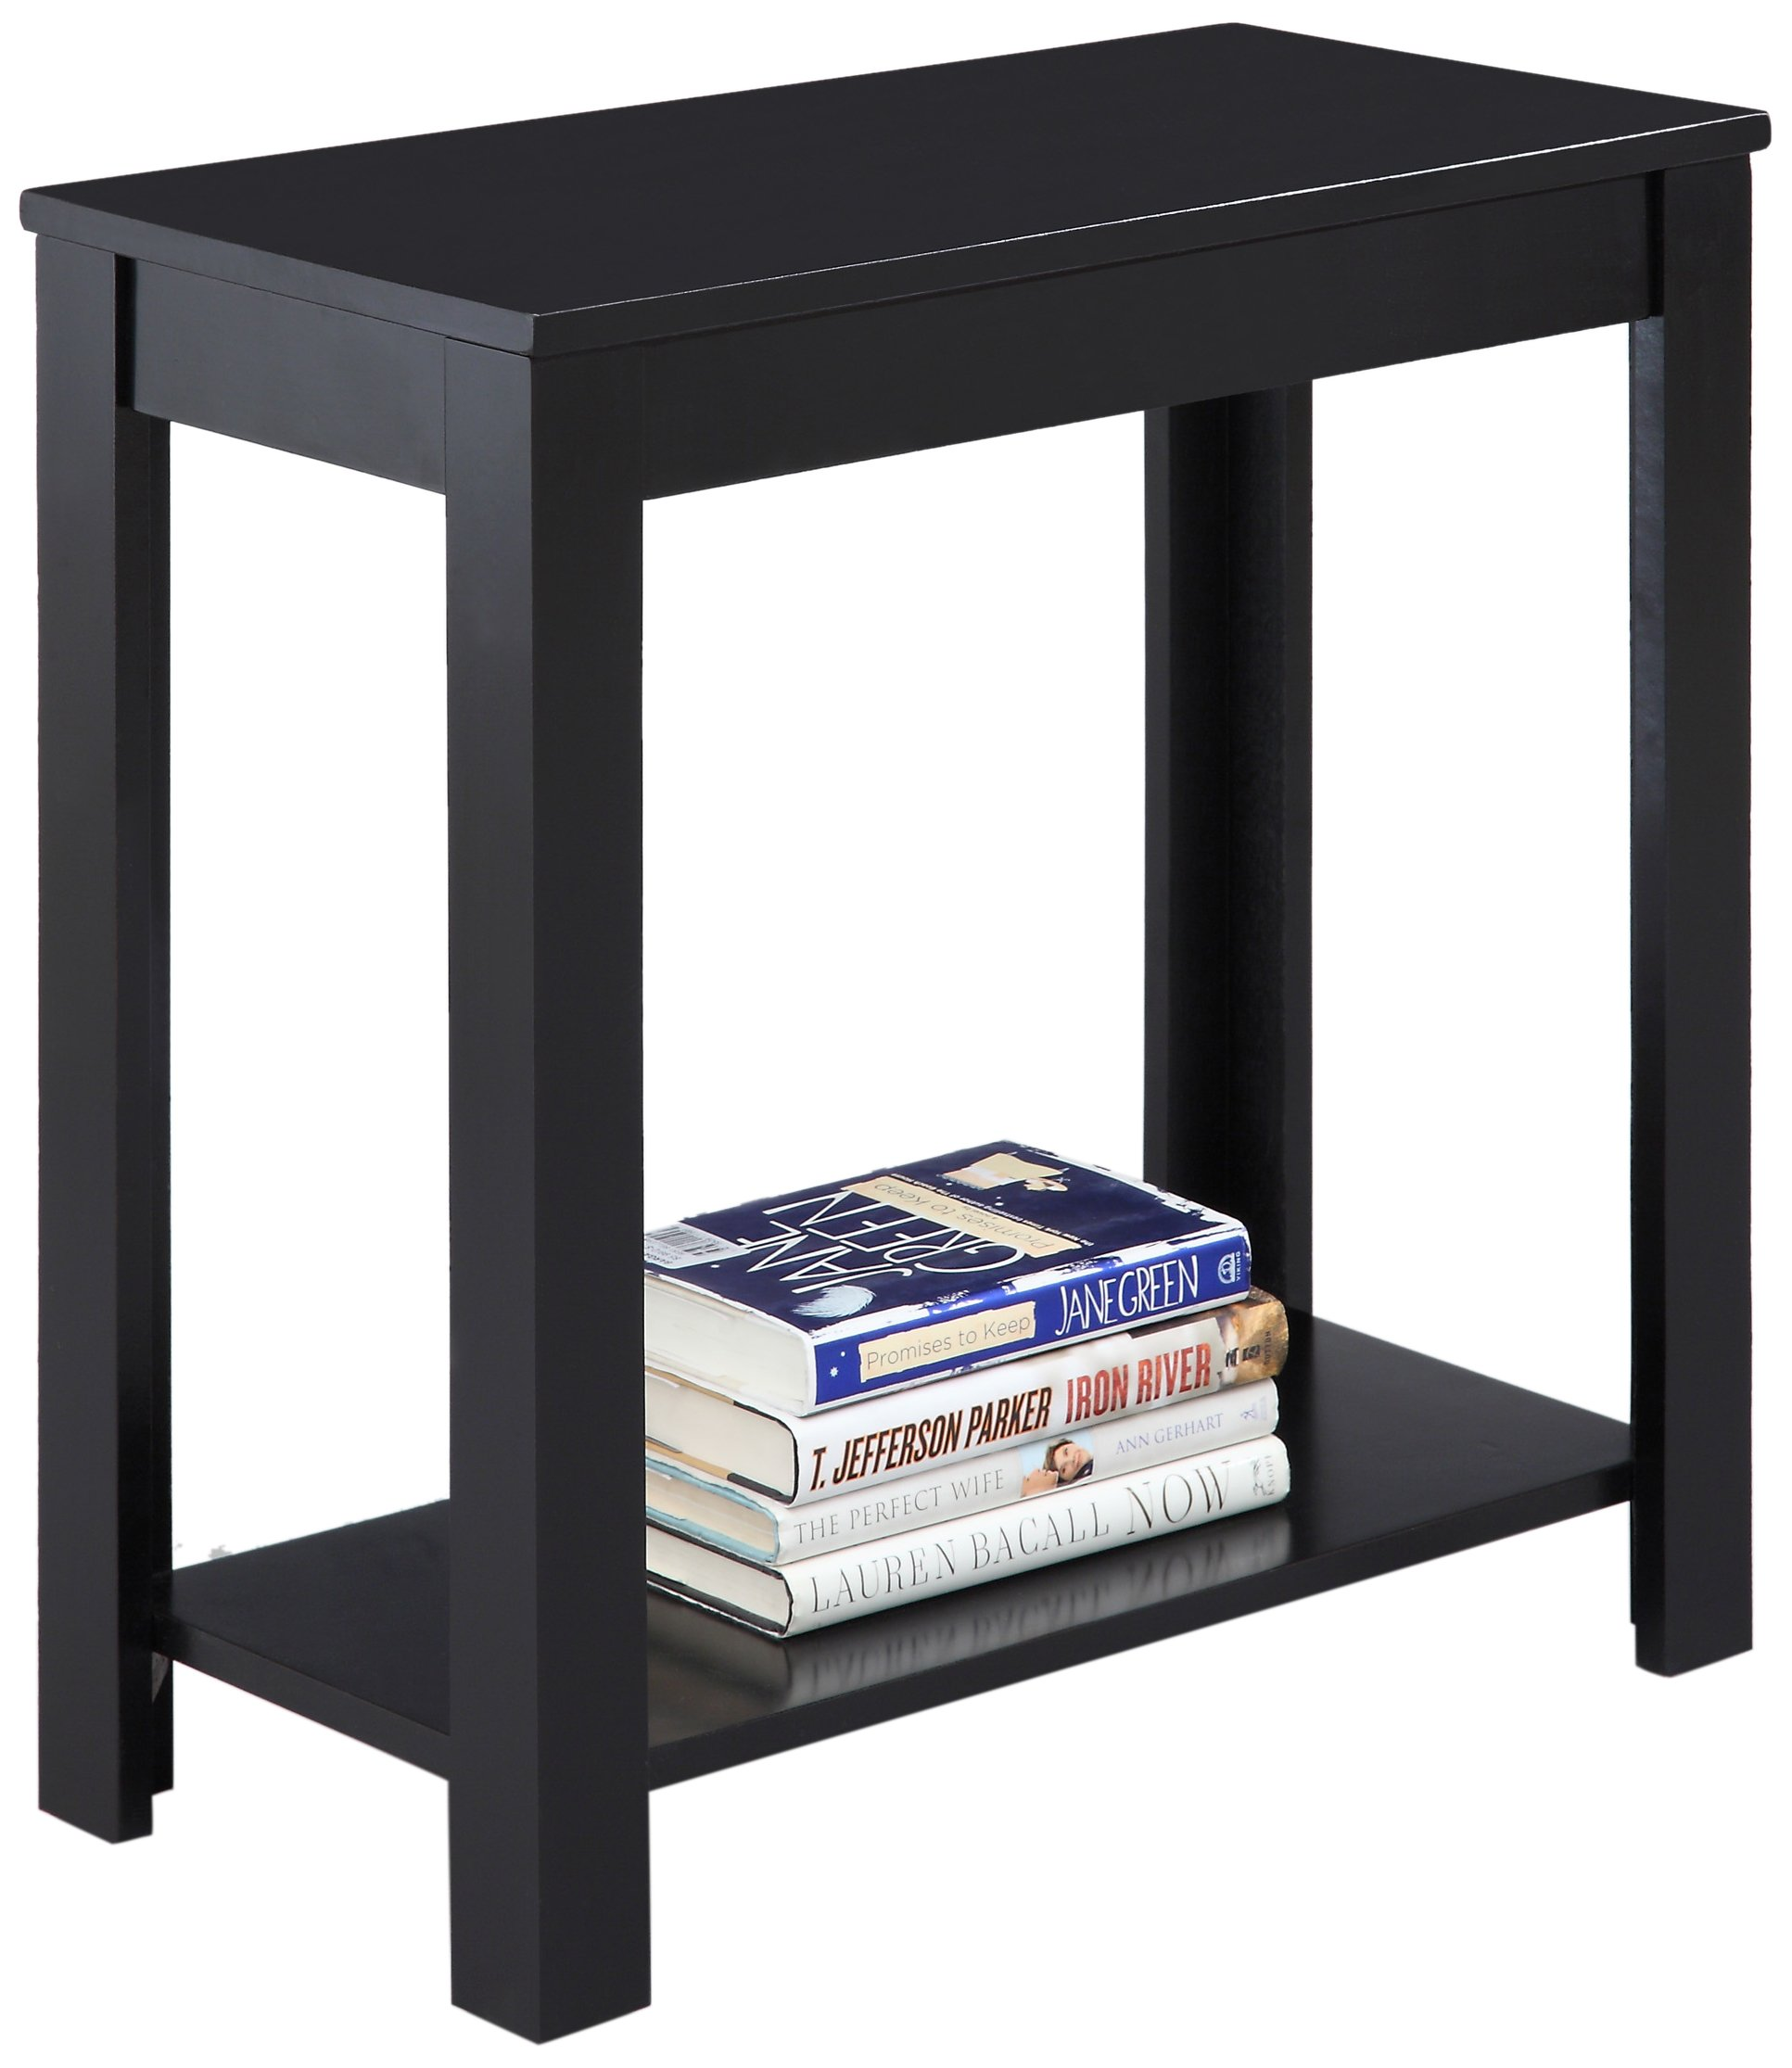 modern side table accent black storage end coffee wood living room with furniture new drum throne for tall drummers outdoor glass kitchen distressed gray small lamp saarinen